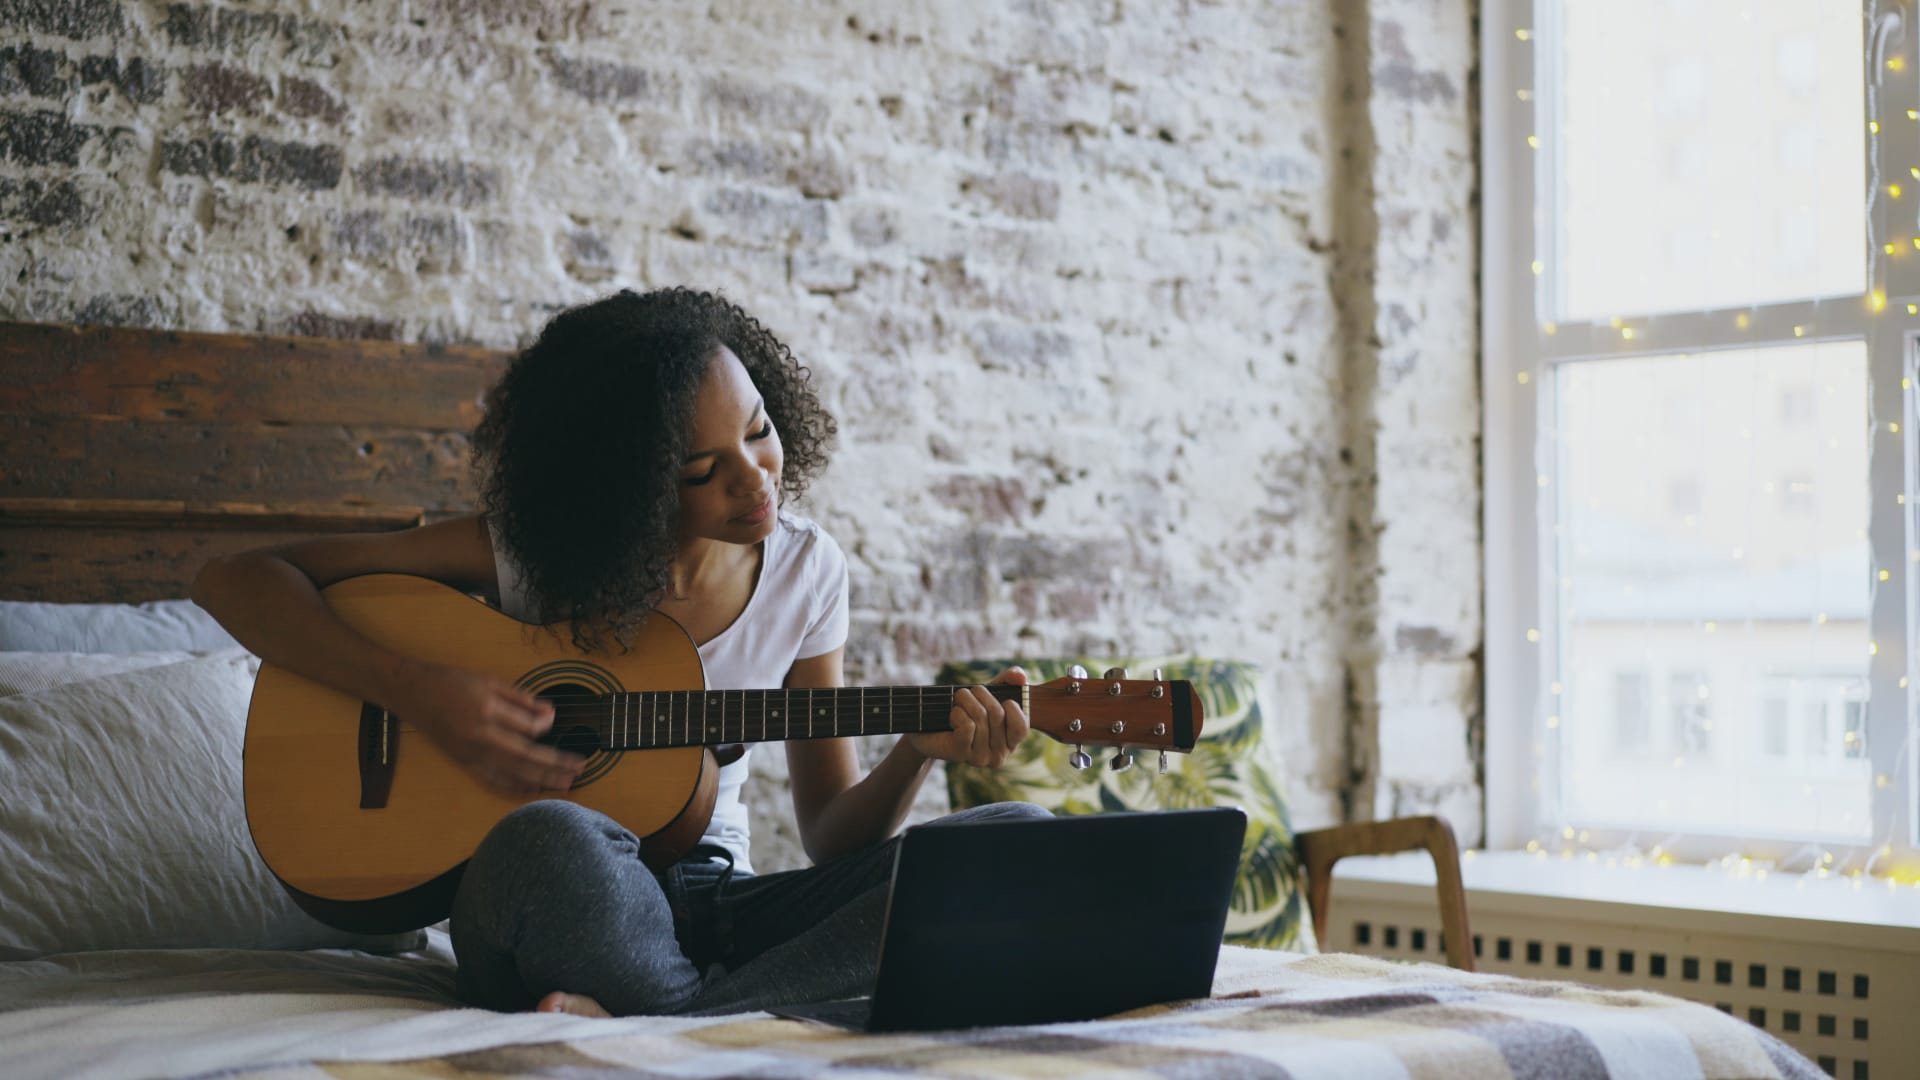 Girl sitting on a bed while playing a guitar